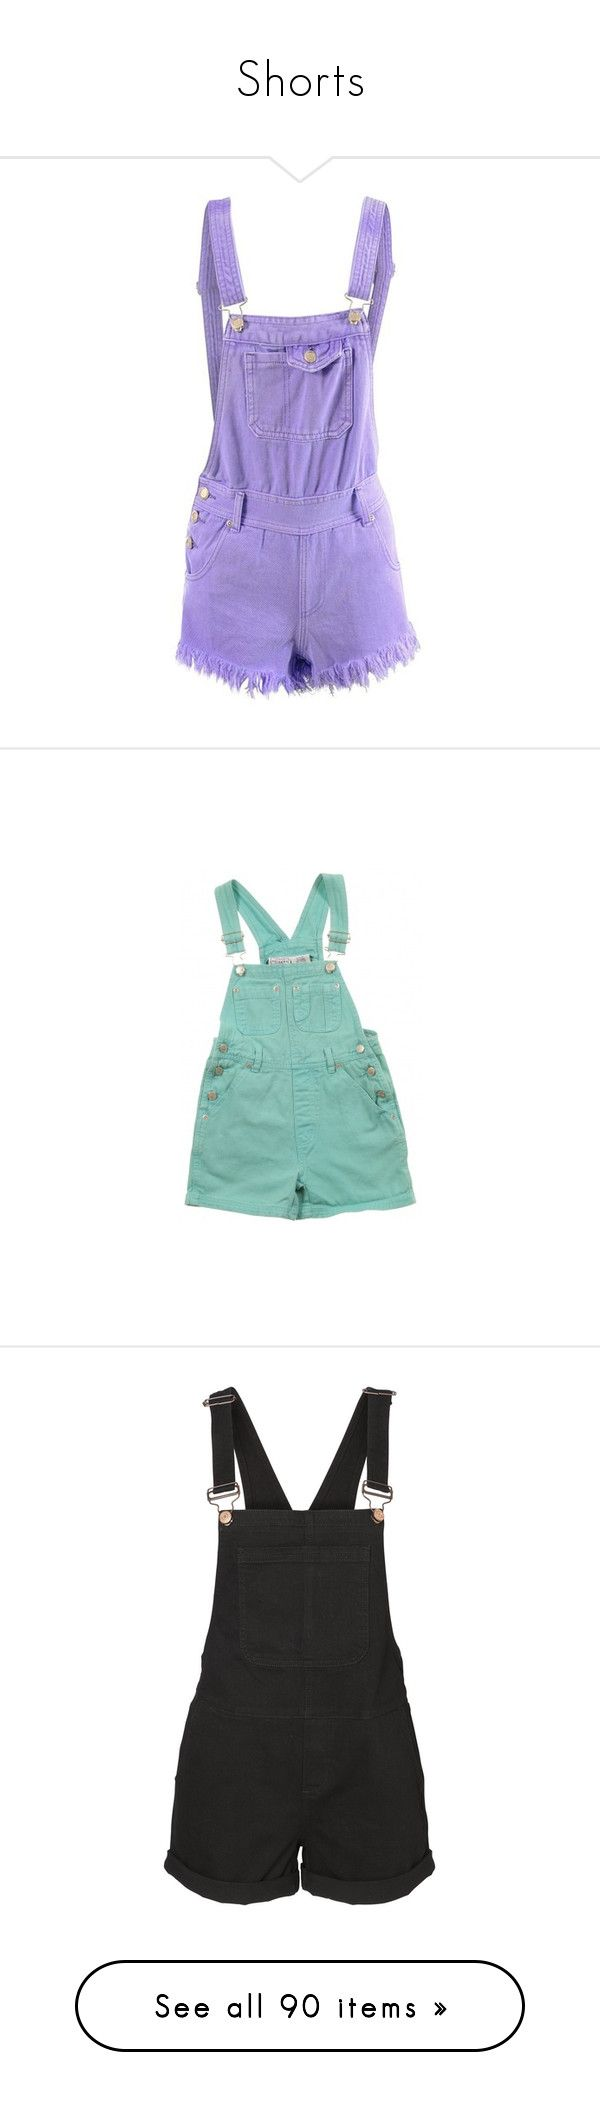 """Shorts"" by kiara-cvrtnjak on Polyvore featuring jumpsuits, rompers, shorts, overalls, dresses, bottoms, pants, bib overalls, purple romper i dungaree overalls"